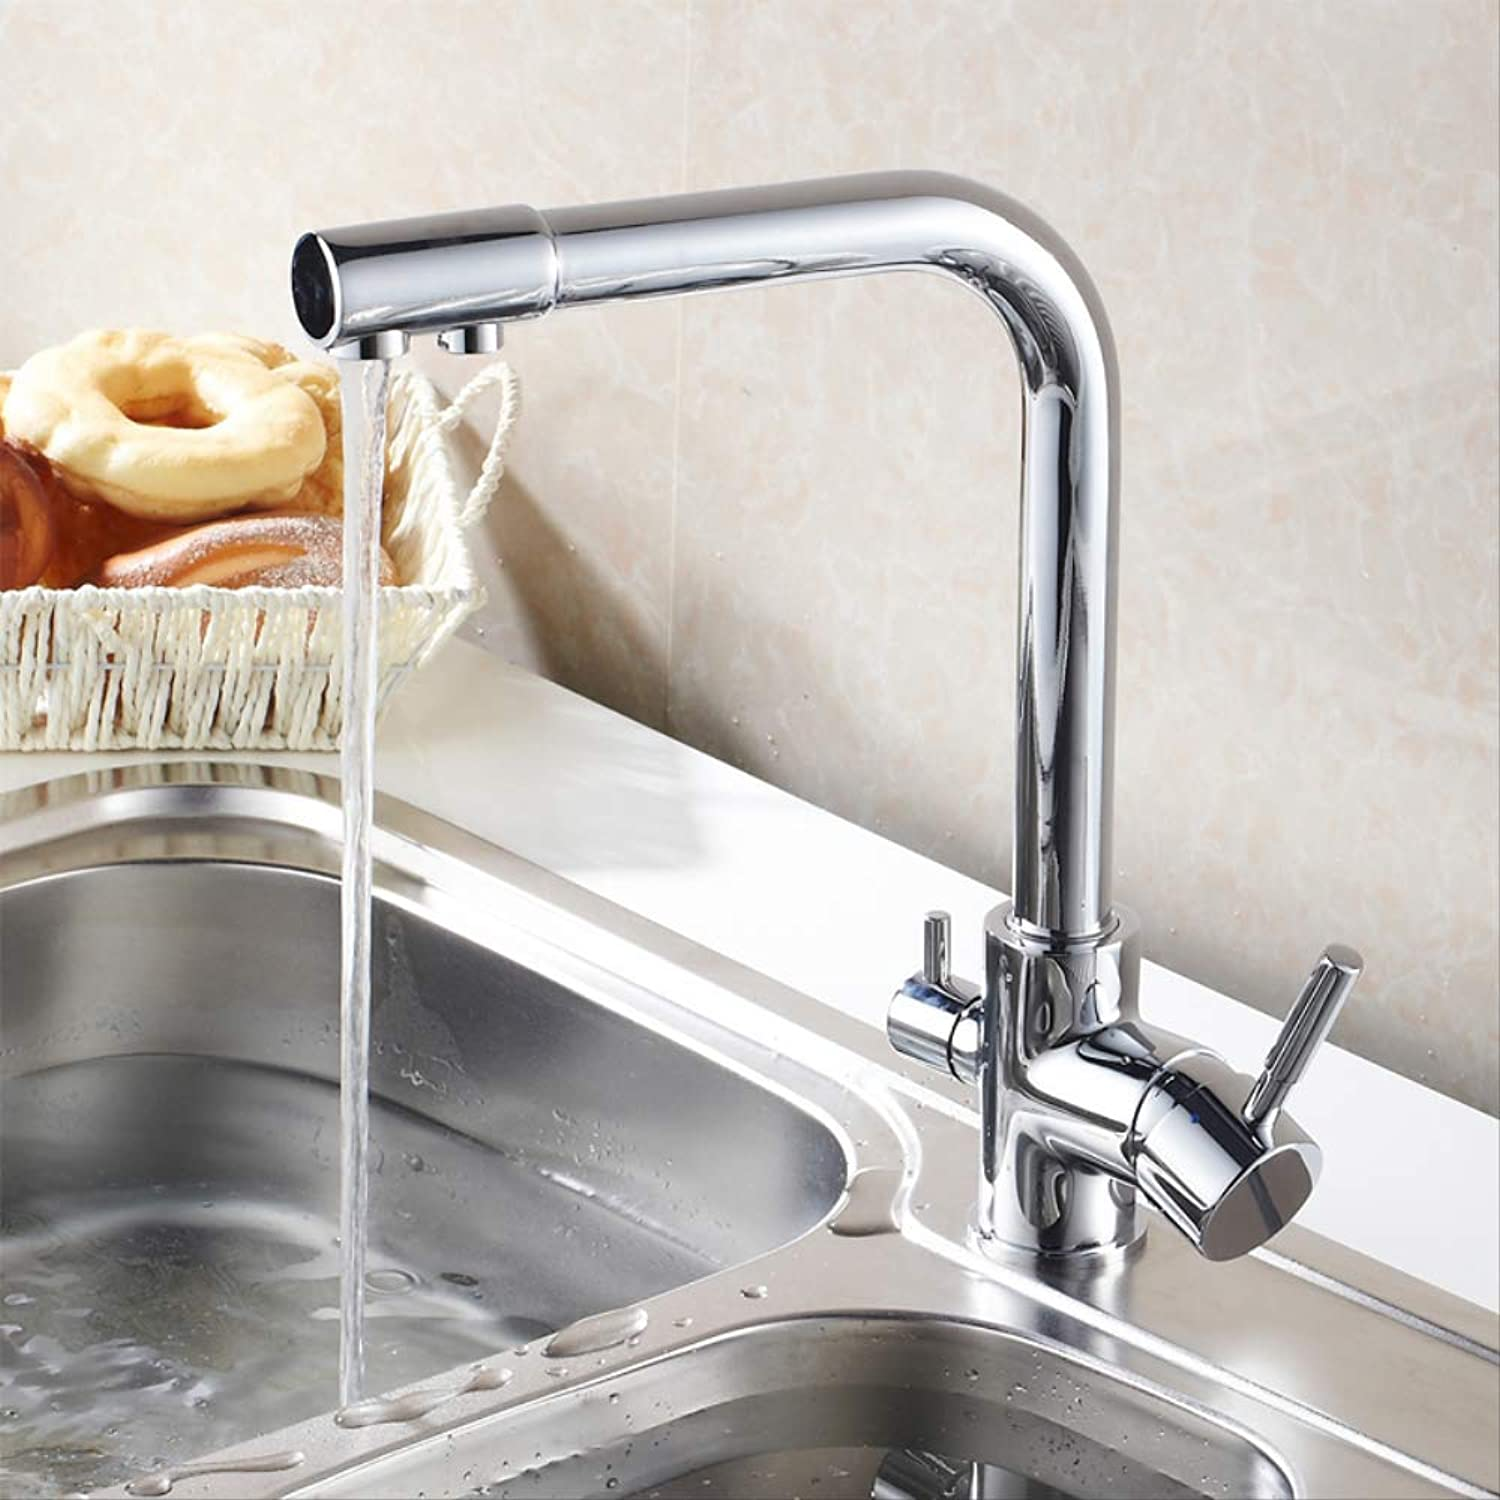 Copper Kitchen Hot and Cold Sink Faucet with Pure Washing Vegetable Basin Faucet Can redate Straight Drink Faucet